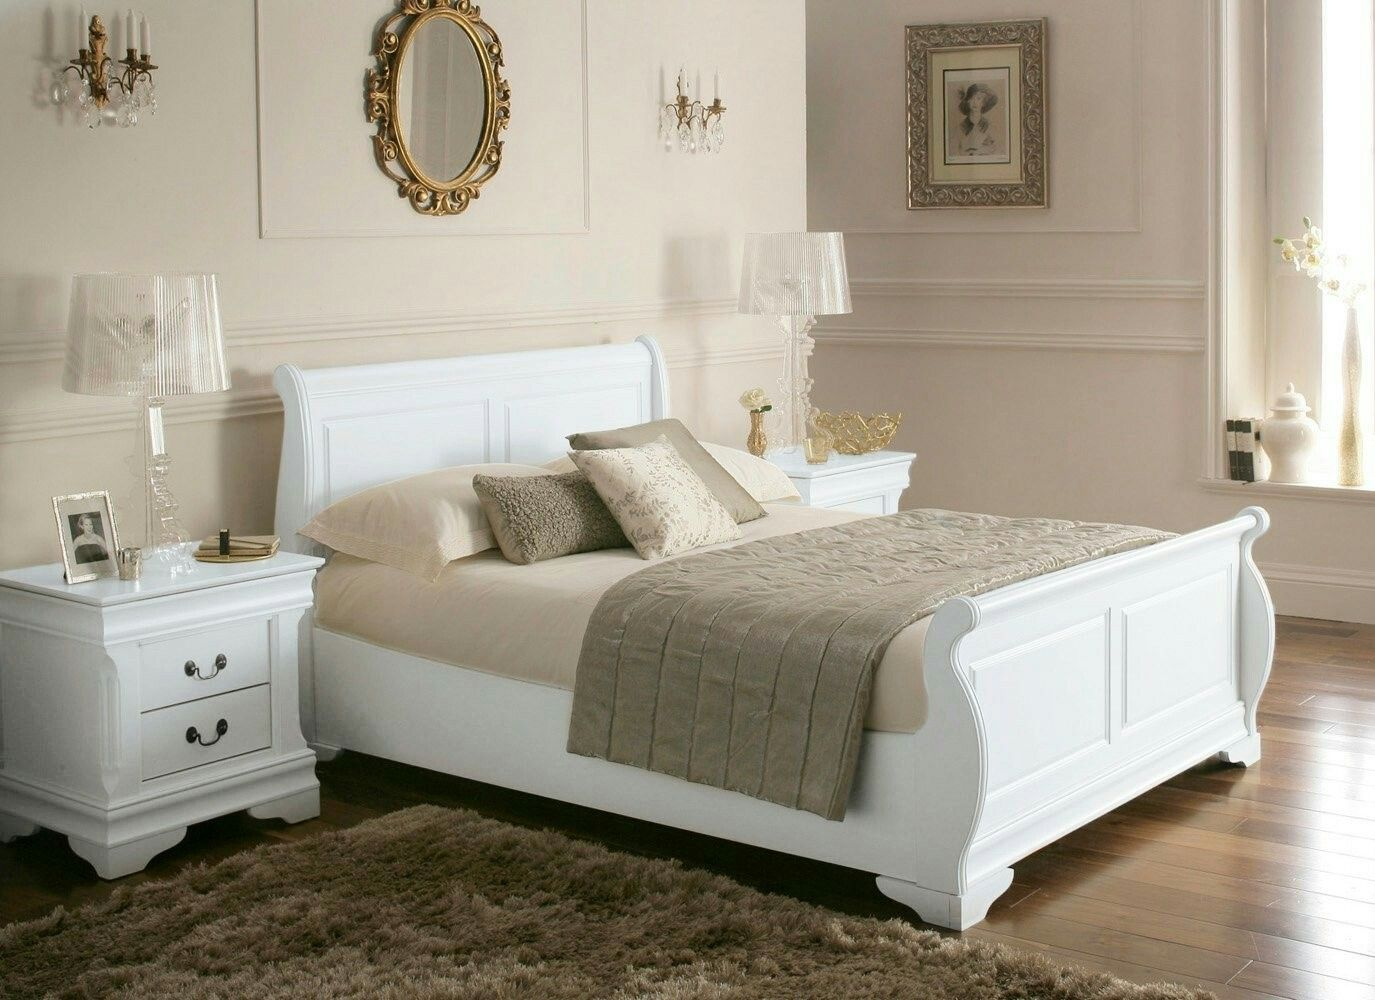 Pin by Cathy Hanley on bedroom Wooden sleigh bed, White